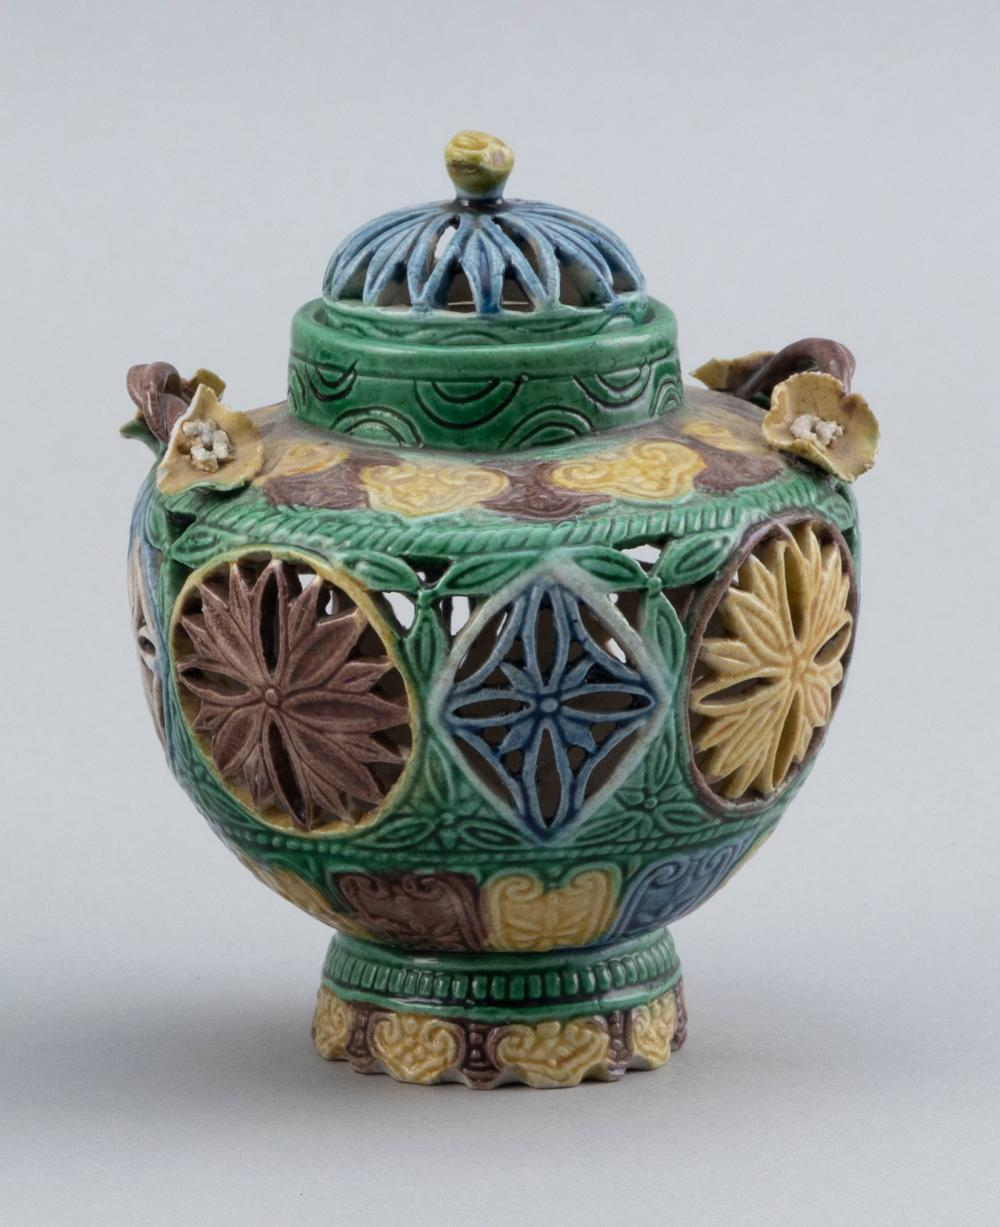 FINE CHINESE SANCAI PORCELAIN COVERED CENSER Early 19th Century Height 4.5